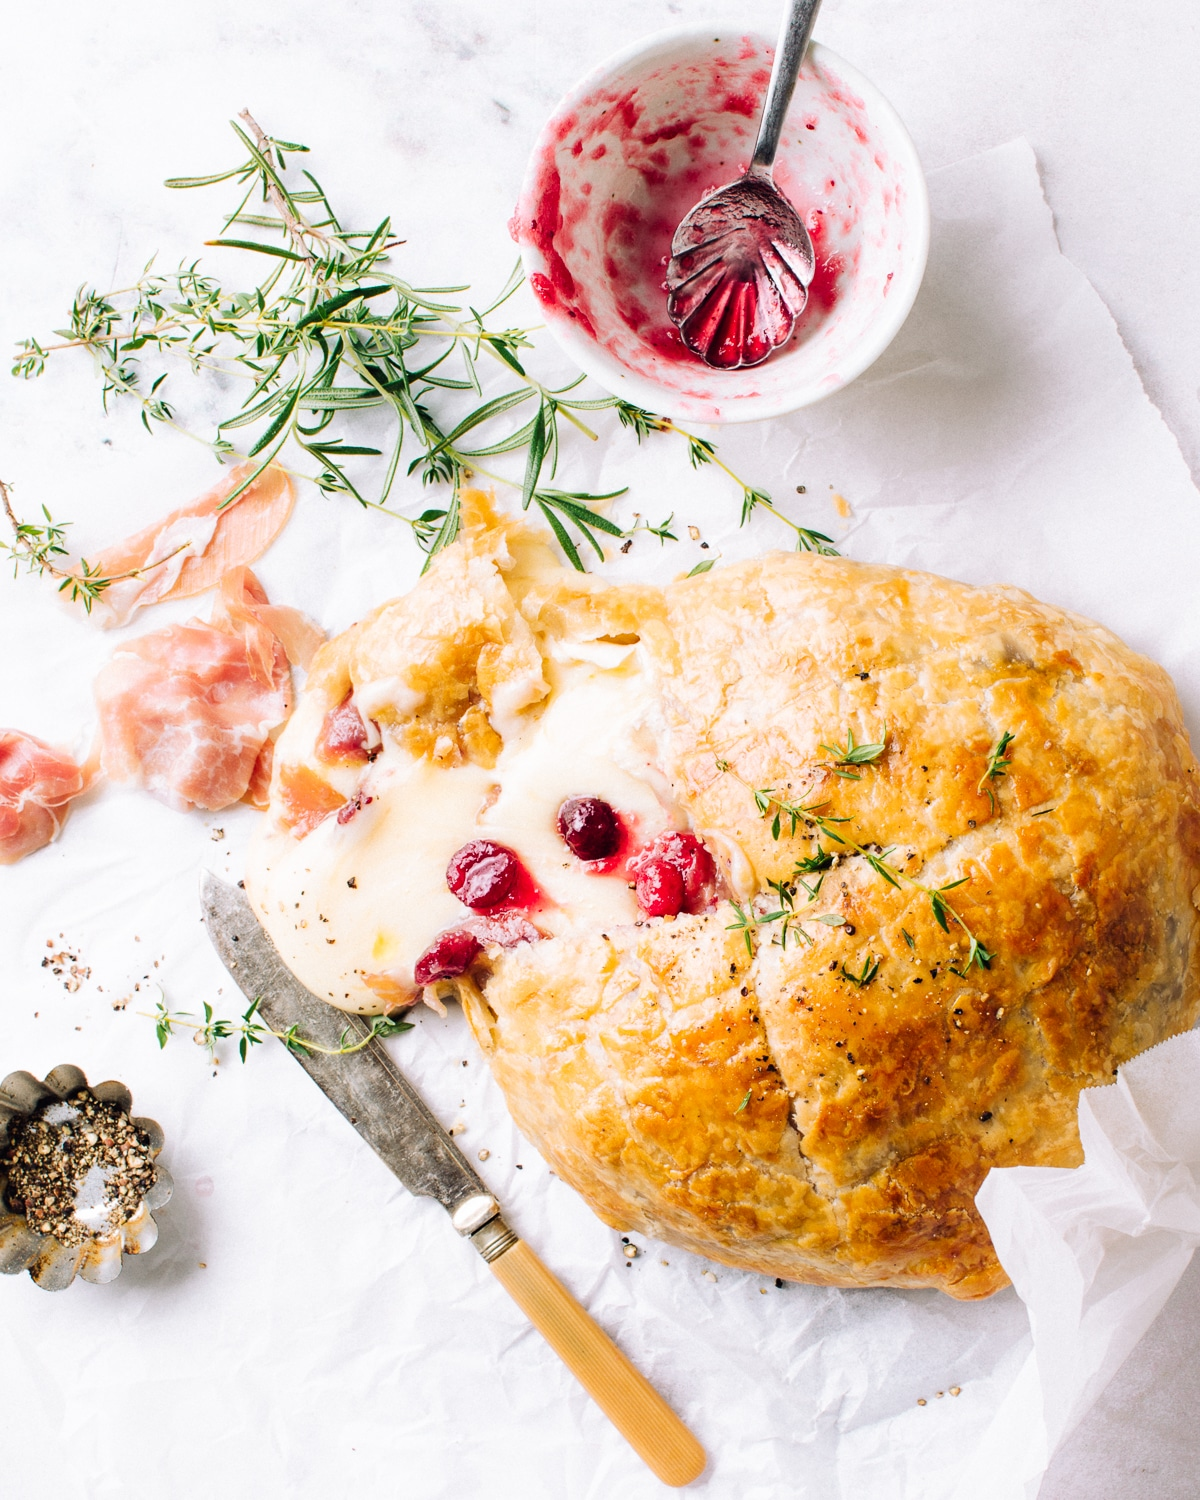 Puff Pastry Baked Brie with Prosciutto